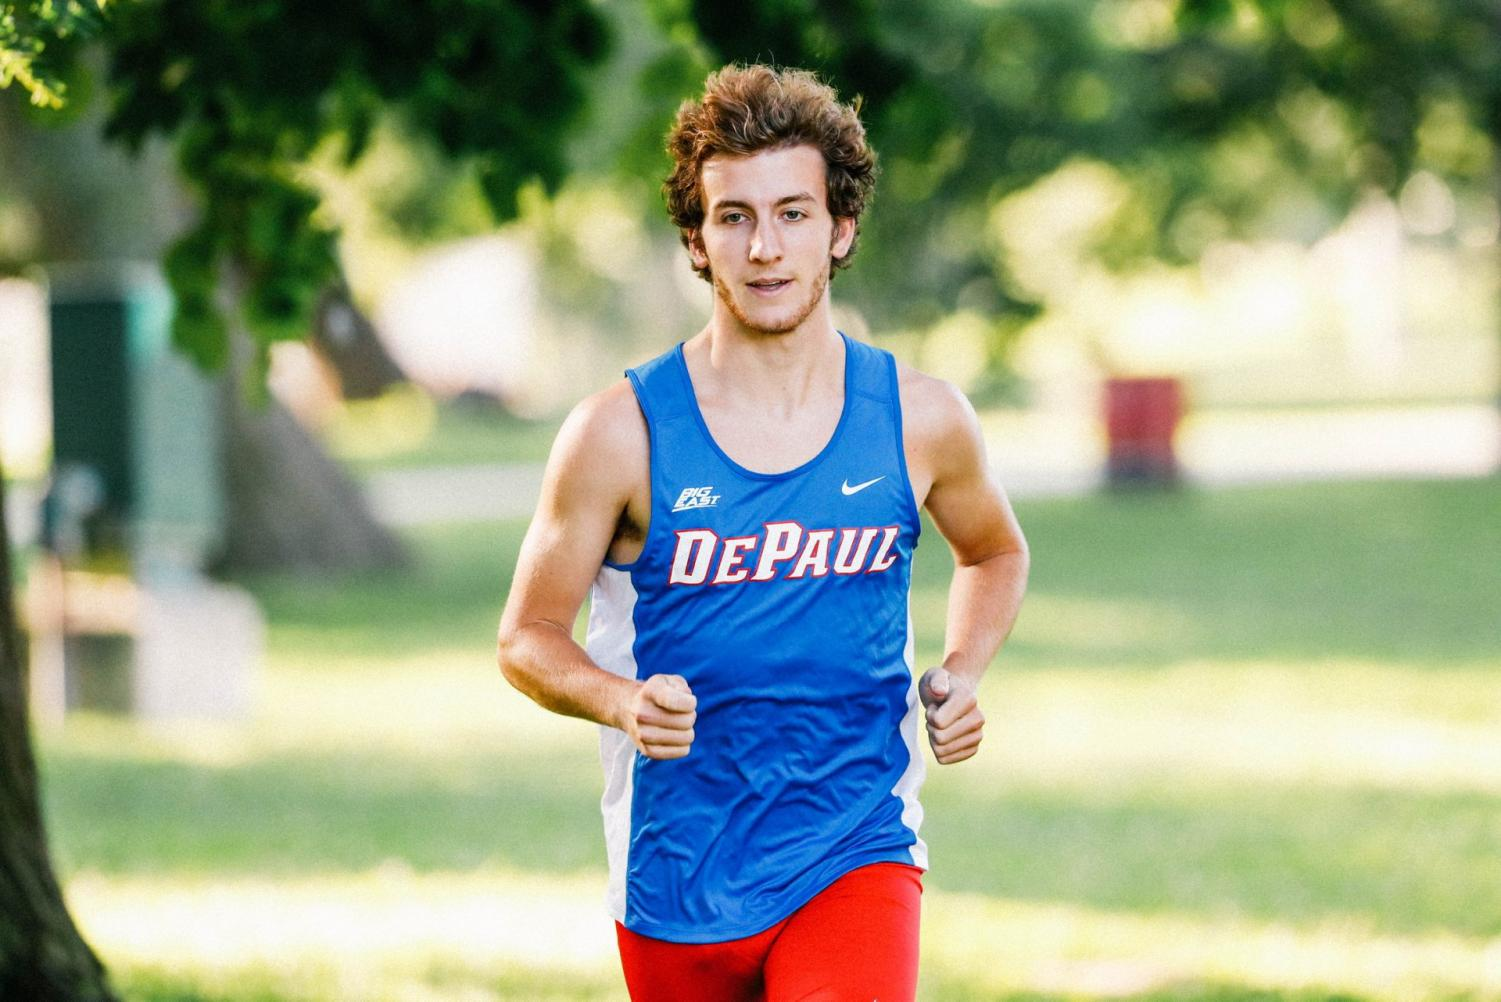 DePaul track and field sophomore Dominic Bruce runs prior to the start of the season.